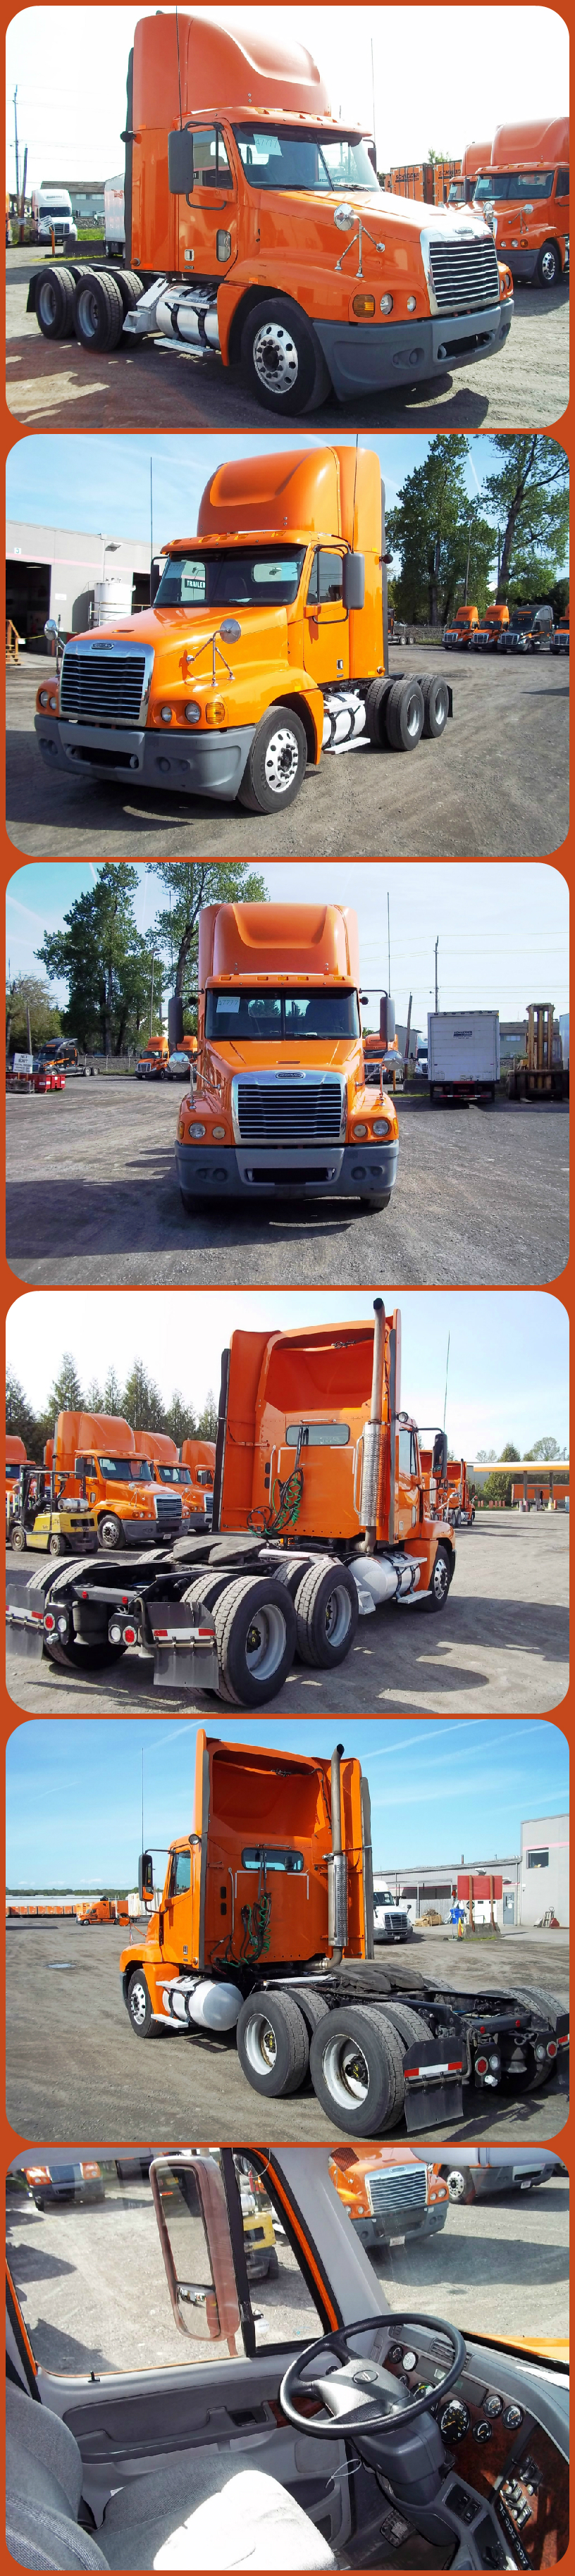 Clearance Sale 07 Freightliner C120 Day Cab W 446k Miles Was 31 300 Now 26 605 Save 4 695 Http Used Trucks Freightliner Used Trailers For Sale